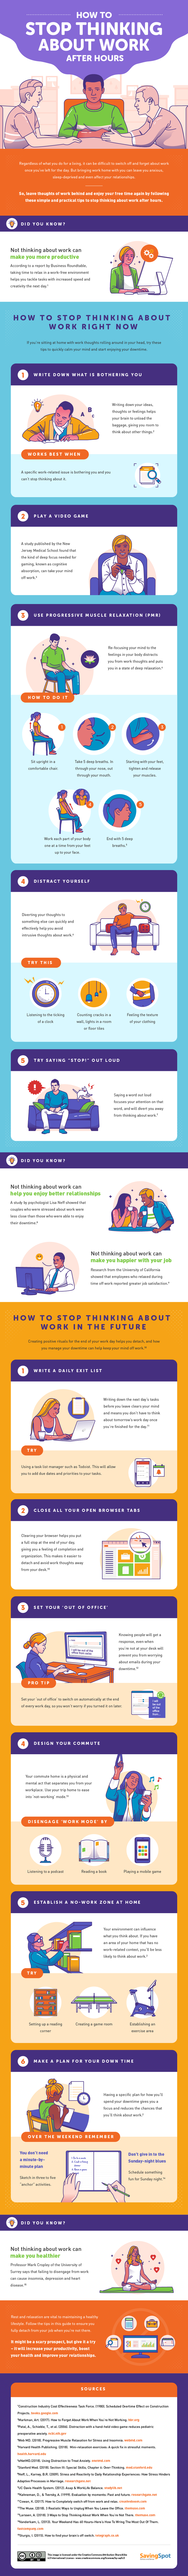 Infographic about how to stop thinking about work and the benefits